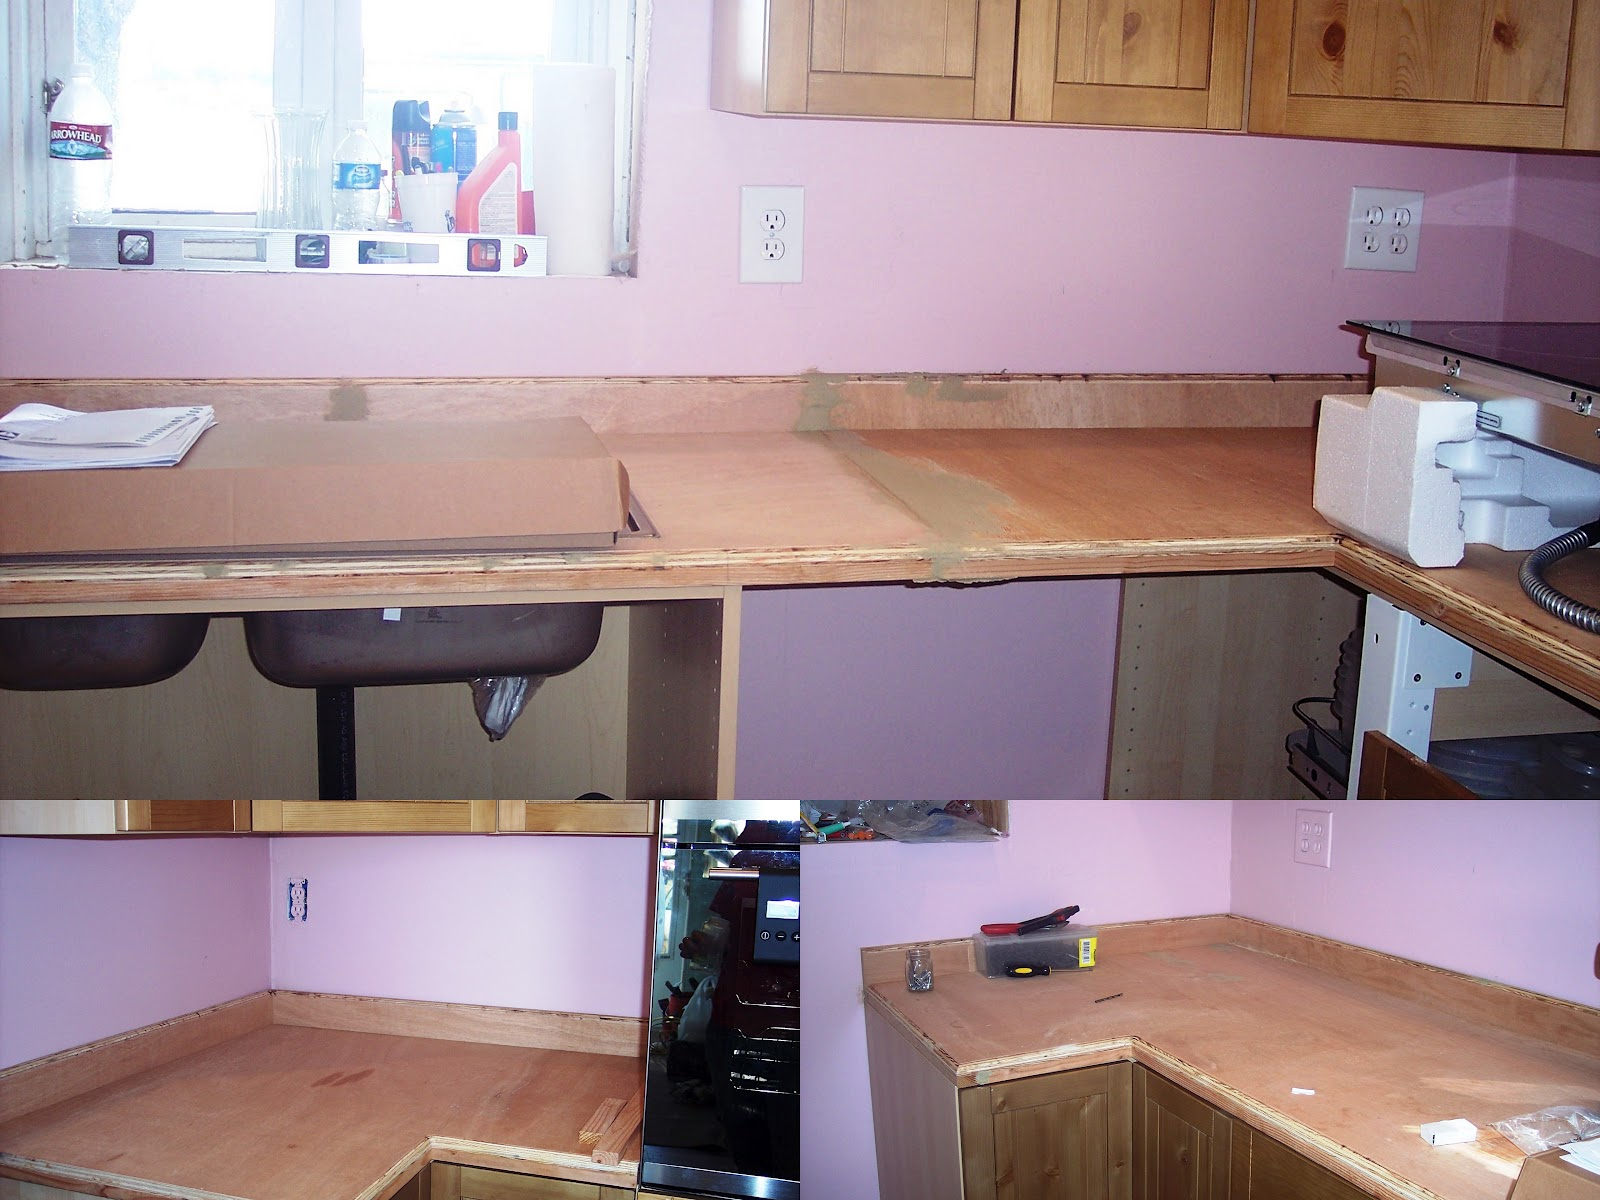 We found this product called Giani Granite Countertop Paint.